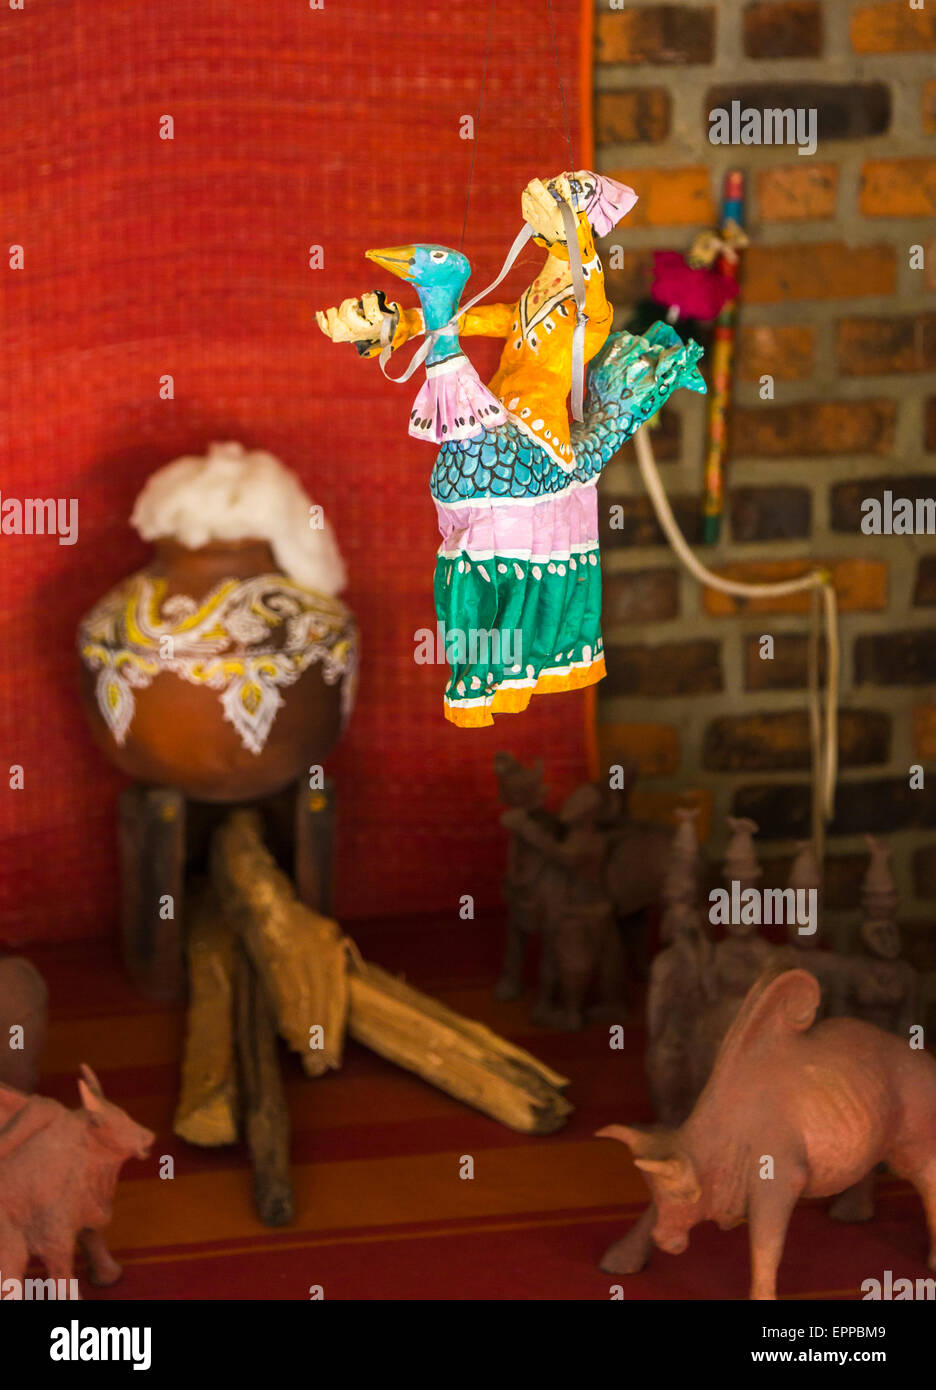 Traditional colourful marionette puppet tourist souvenir at DakshinaChitra Heritage Museum near Chennai, Tamil Nadu, - Stock Image